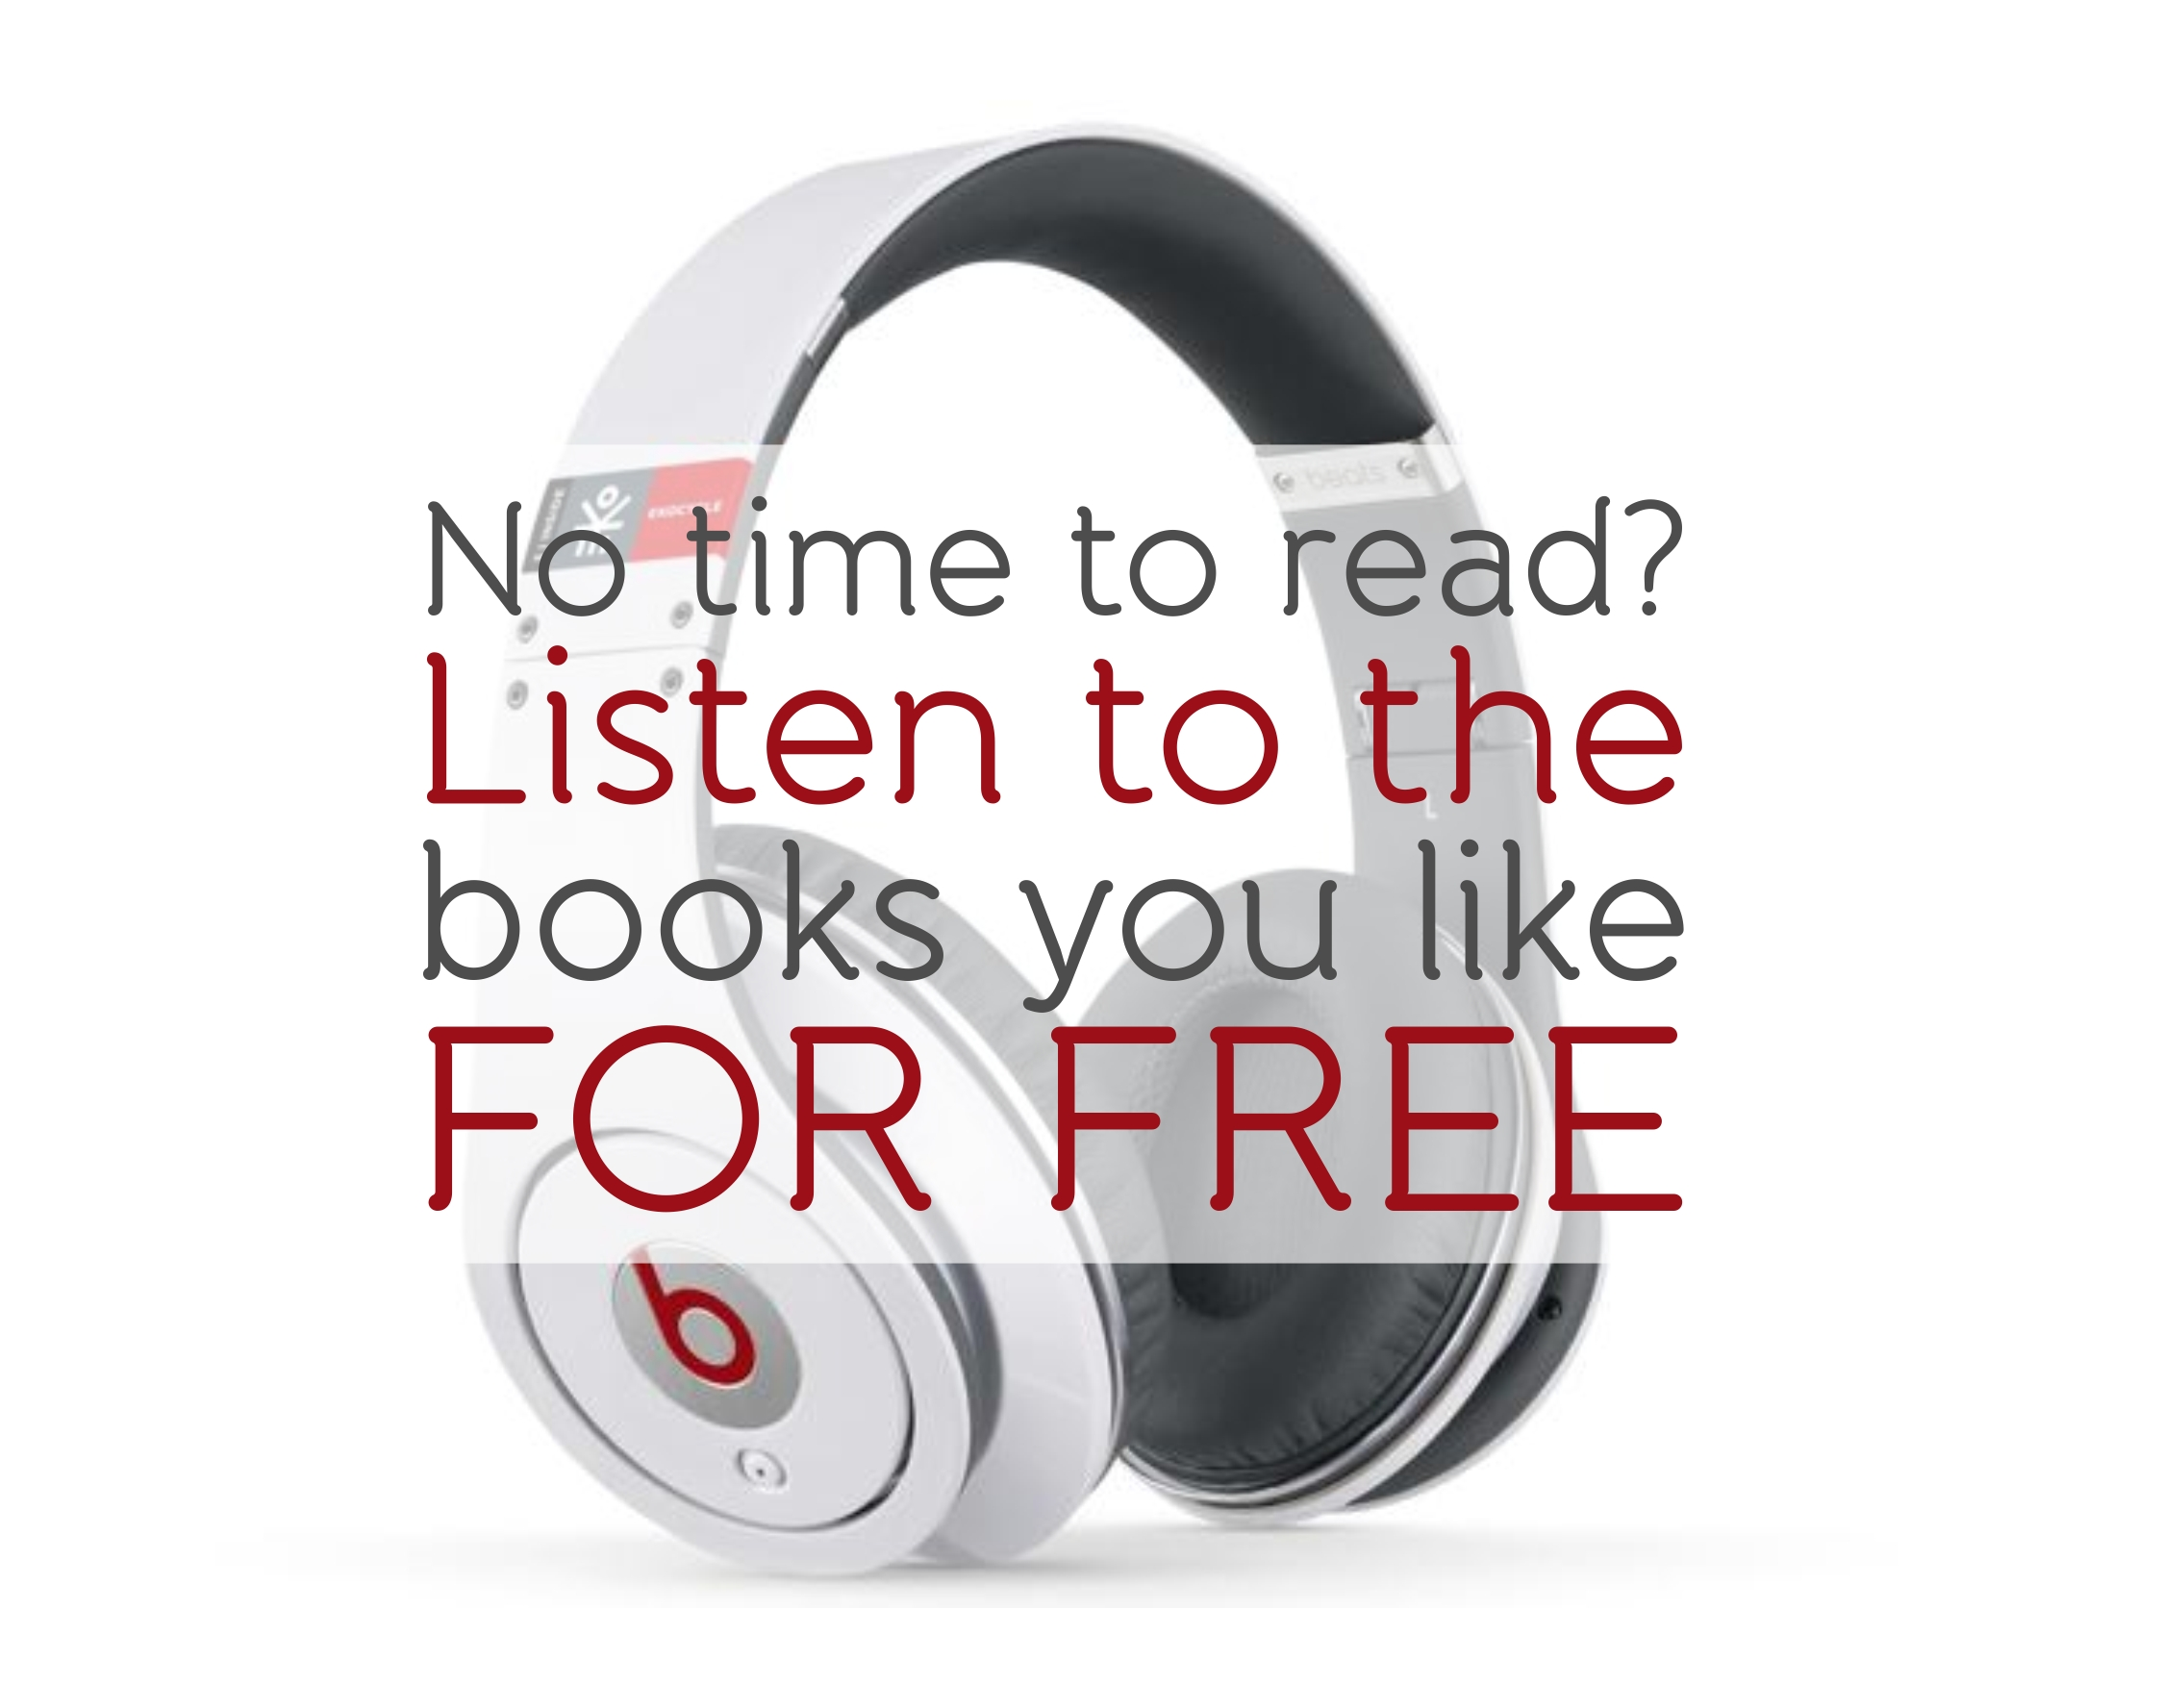 20 Book Sites Audio Books Download Free ...  Action Words For Resumes